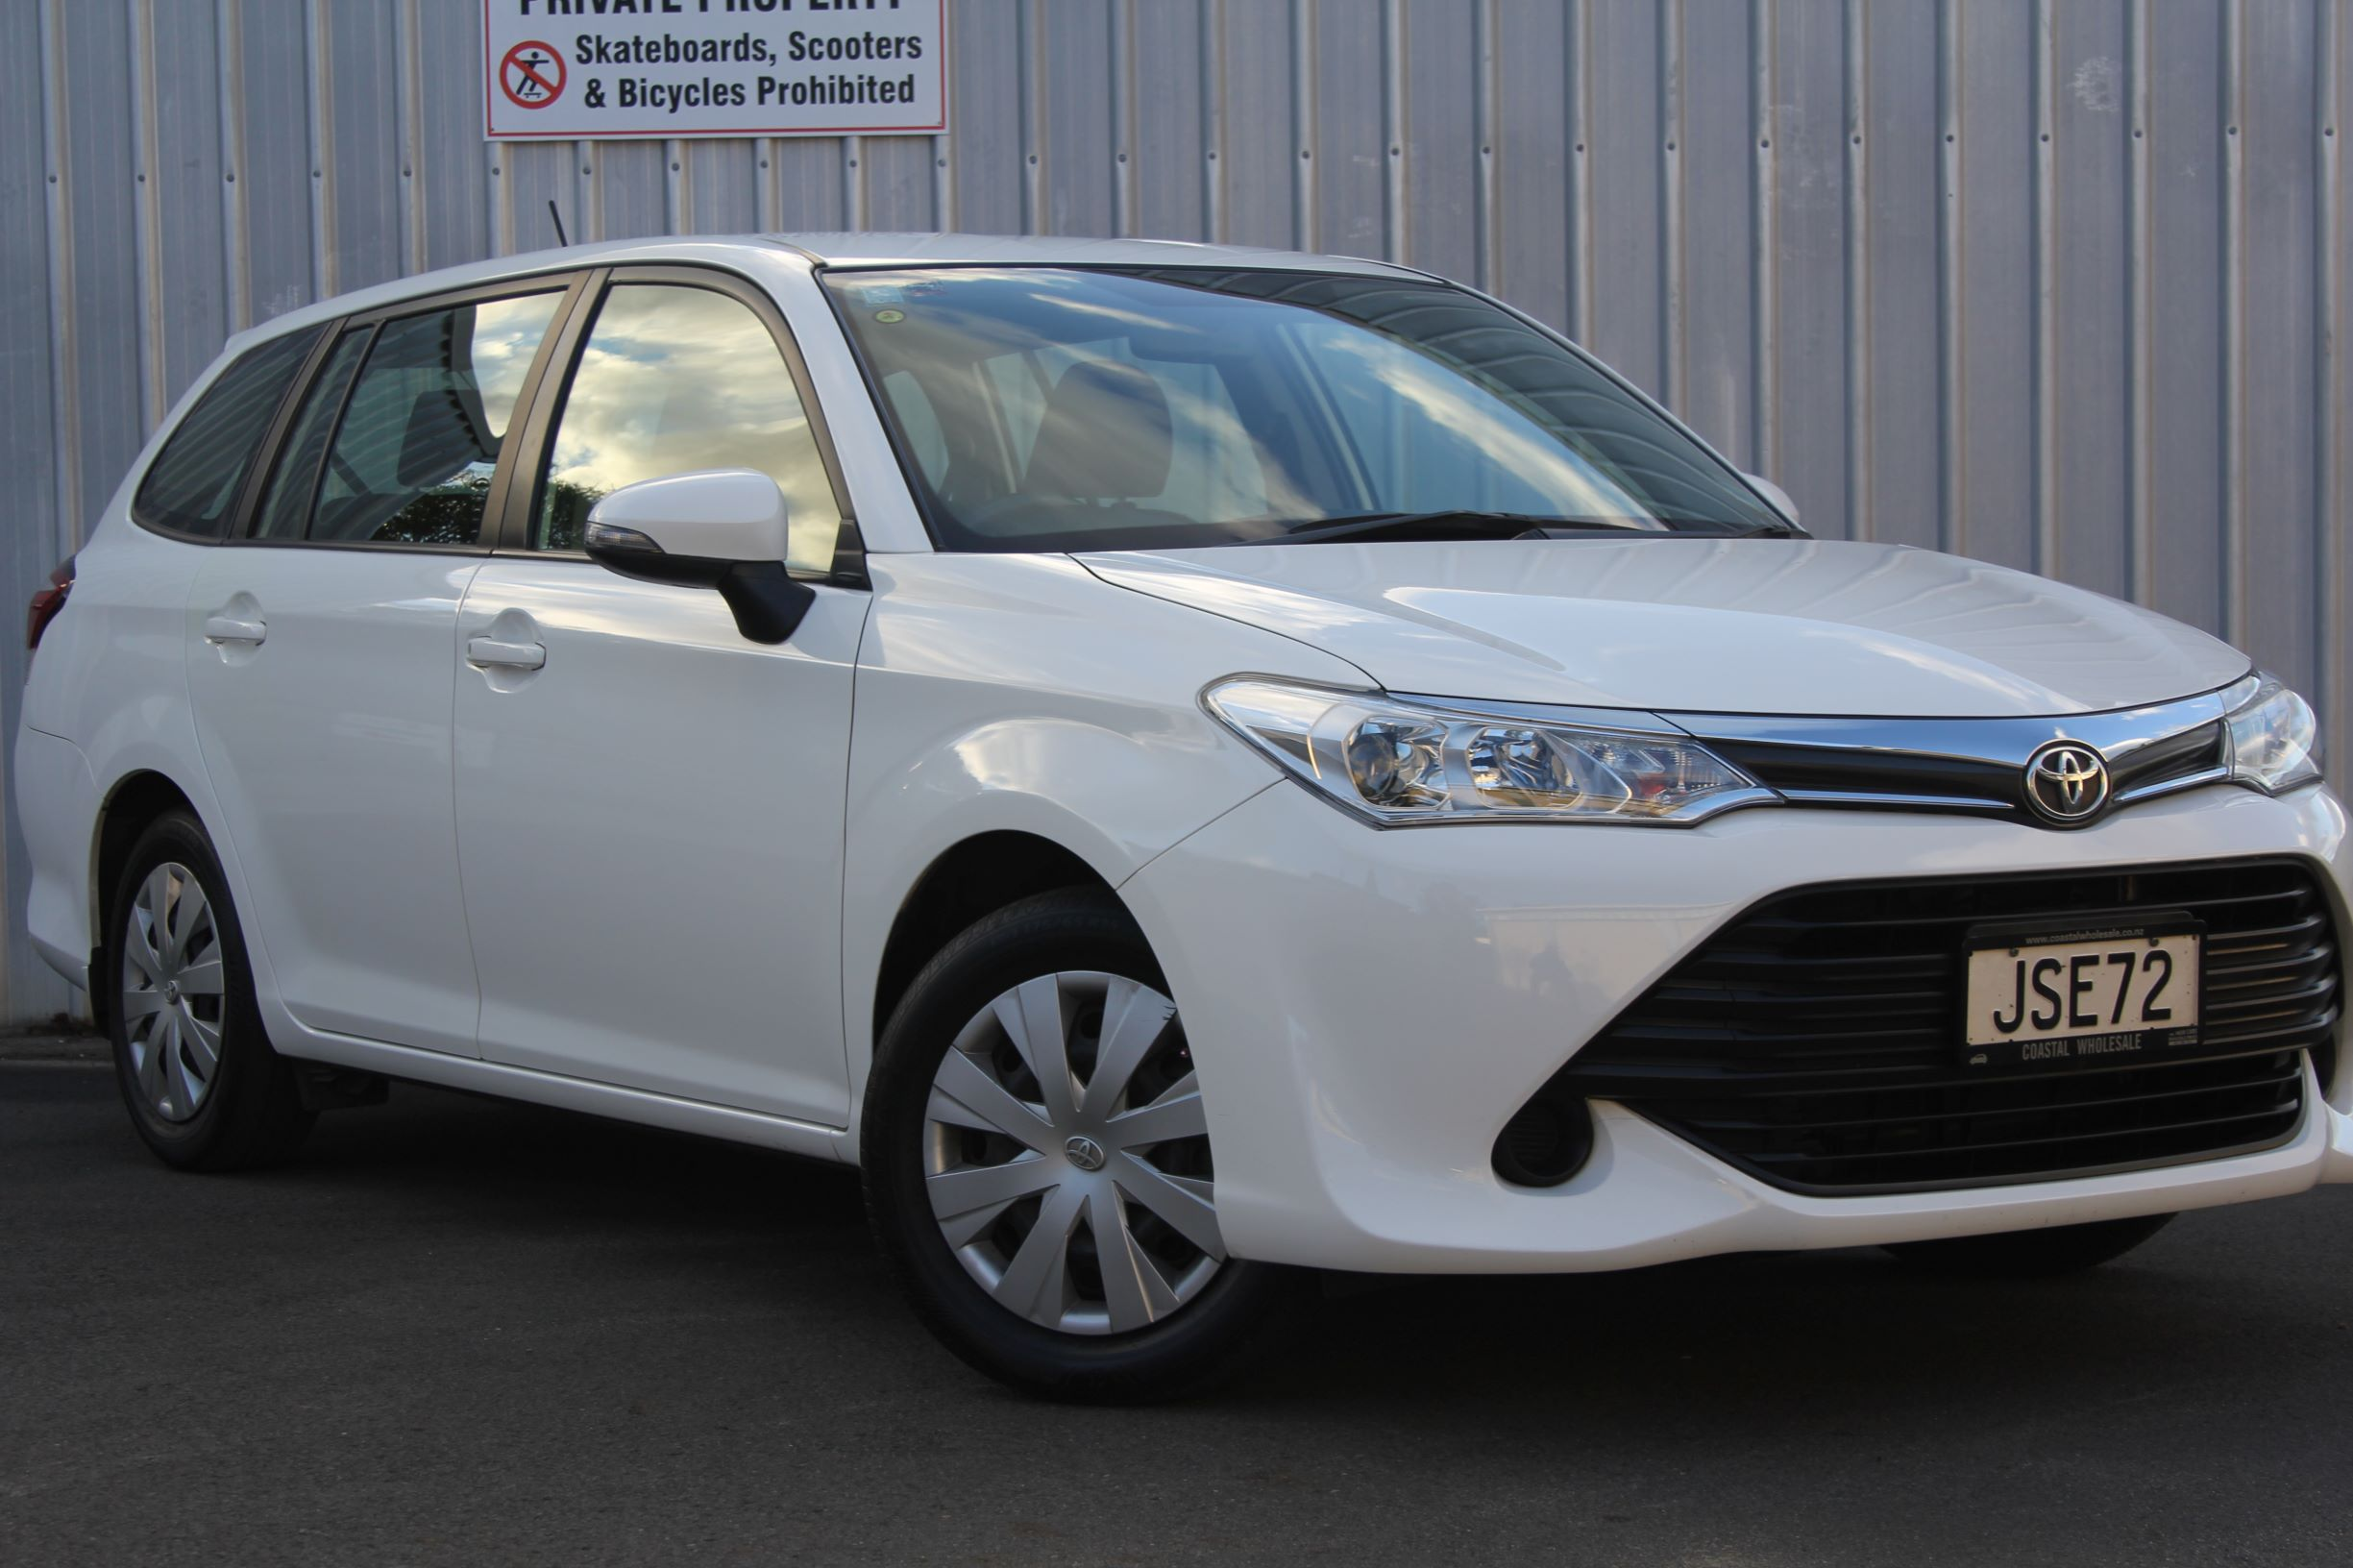 Toyota Corolla wagon 2016 for sale in Auckland